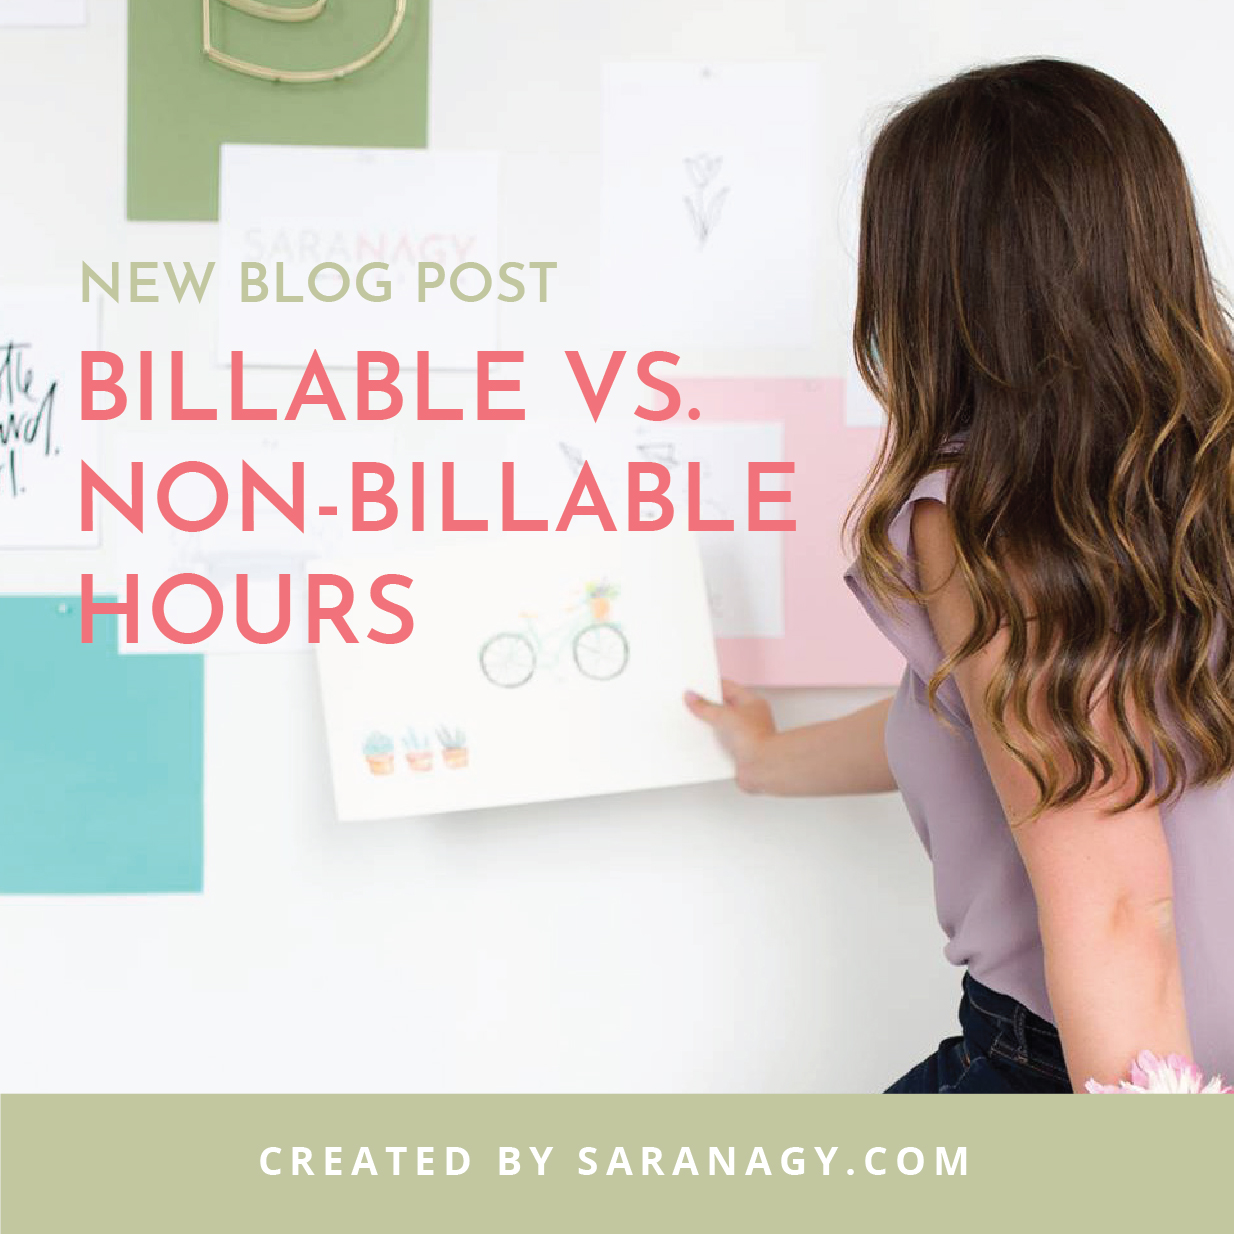 billable-hours-vs-non-billable-hours